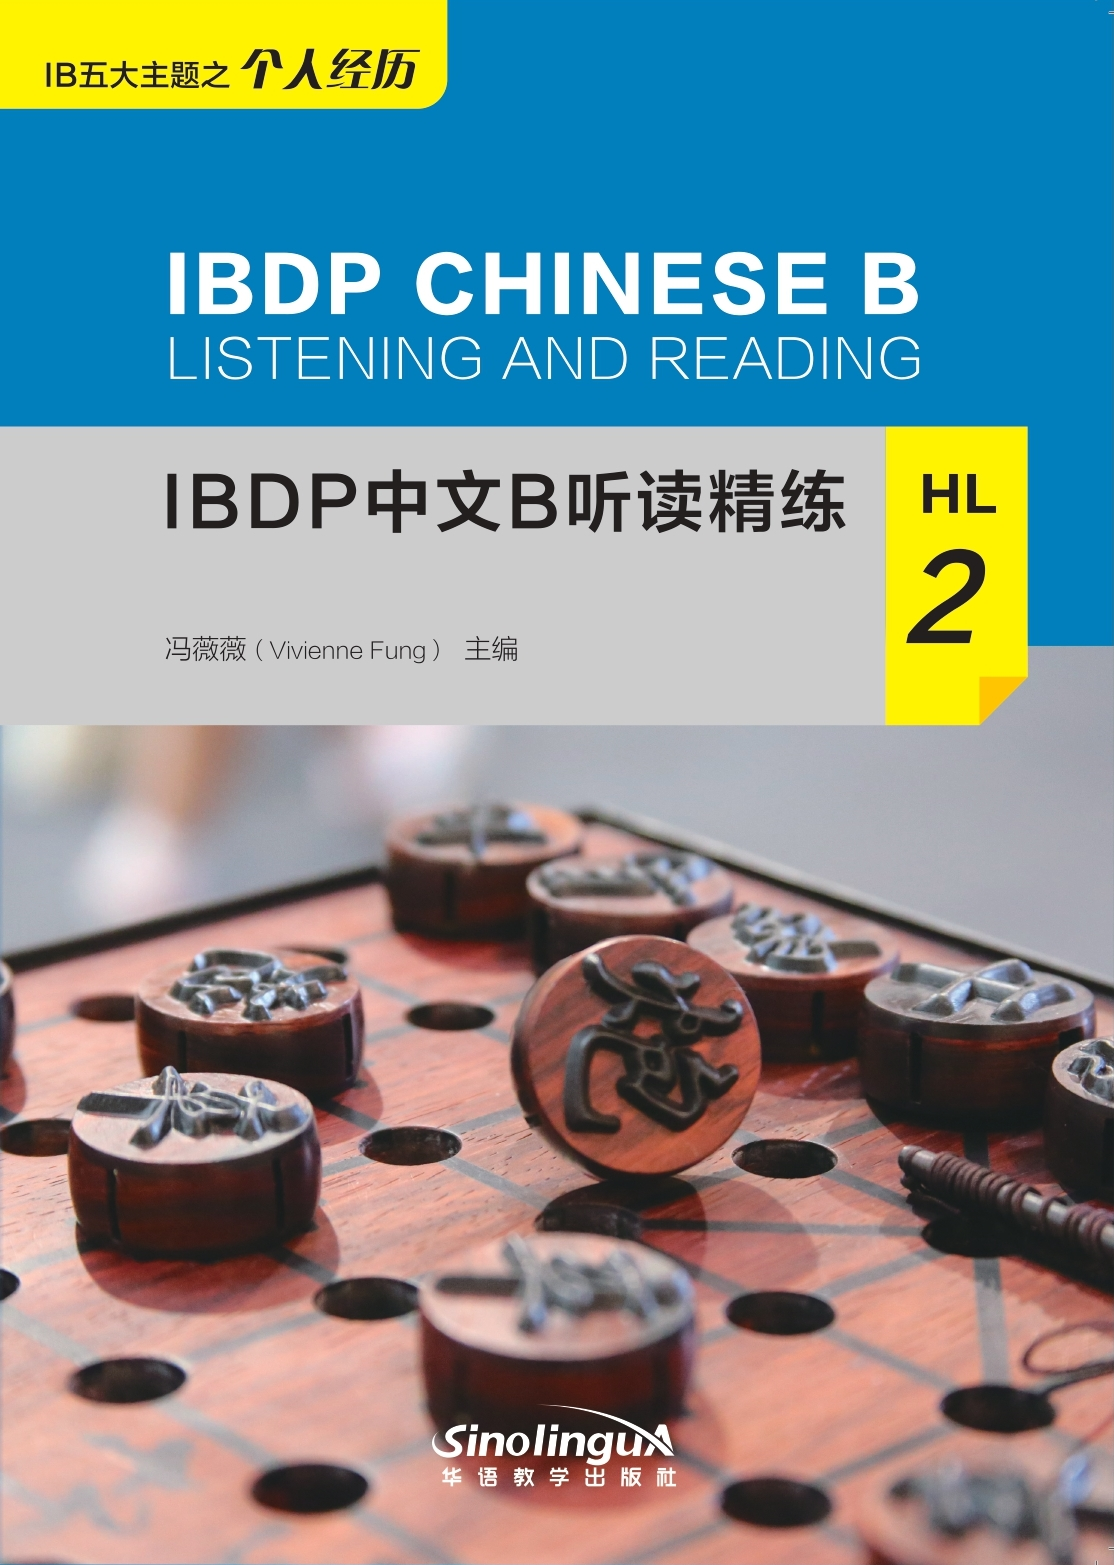 IBDP中文B听读精练HL 2  IBDP Chinese B Listening and Reading HL 2